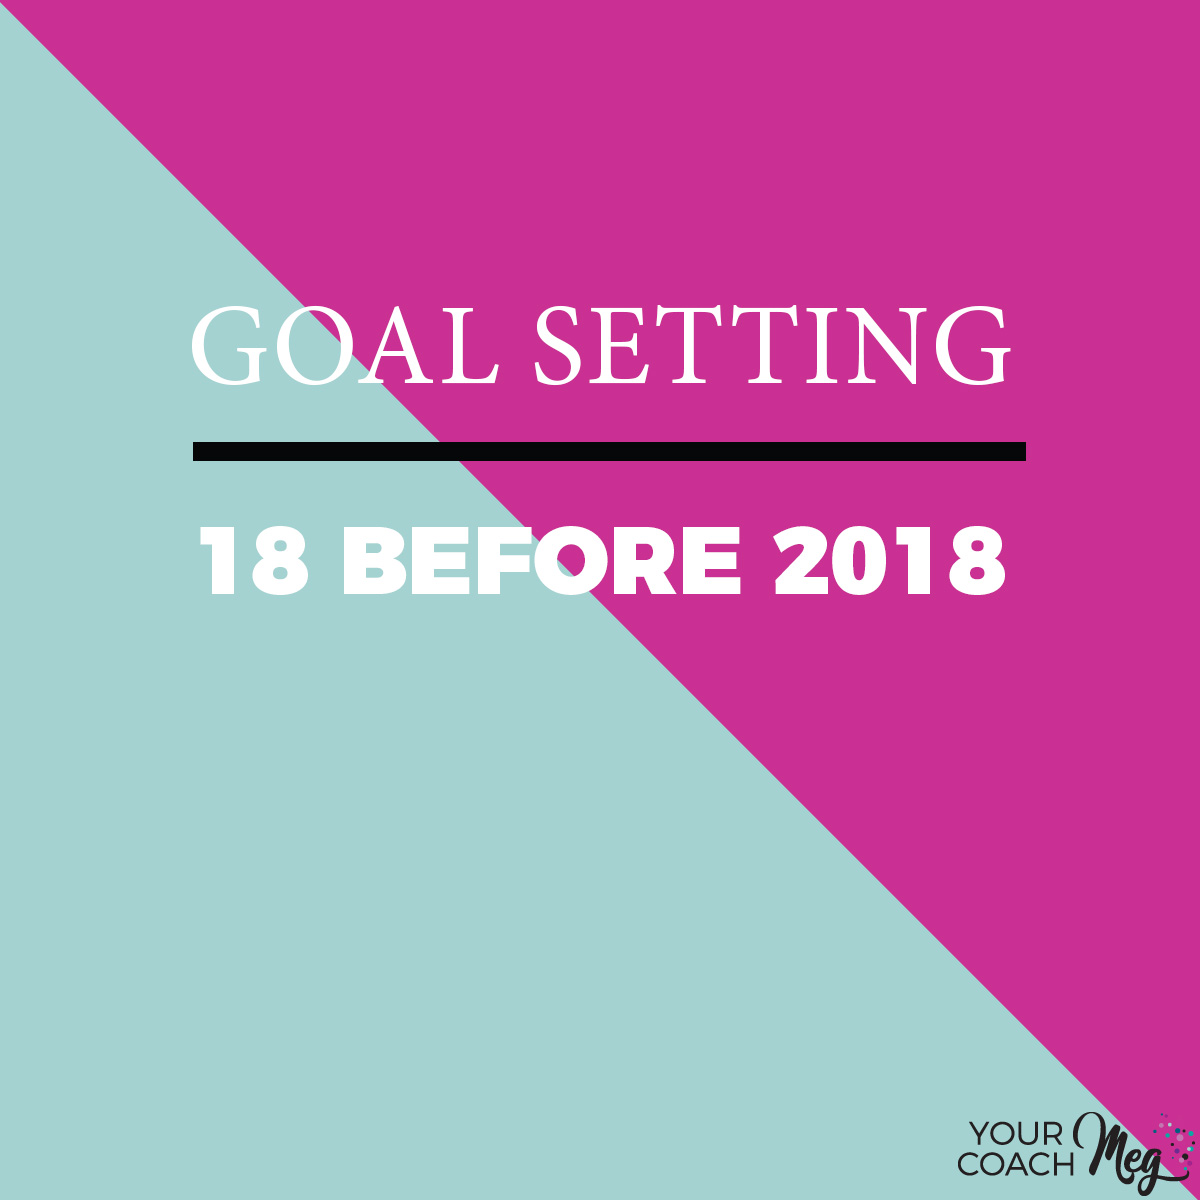 18 BEFORE 2018- A GOAL SETTING CHALLENGE